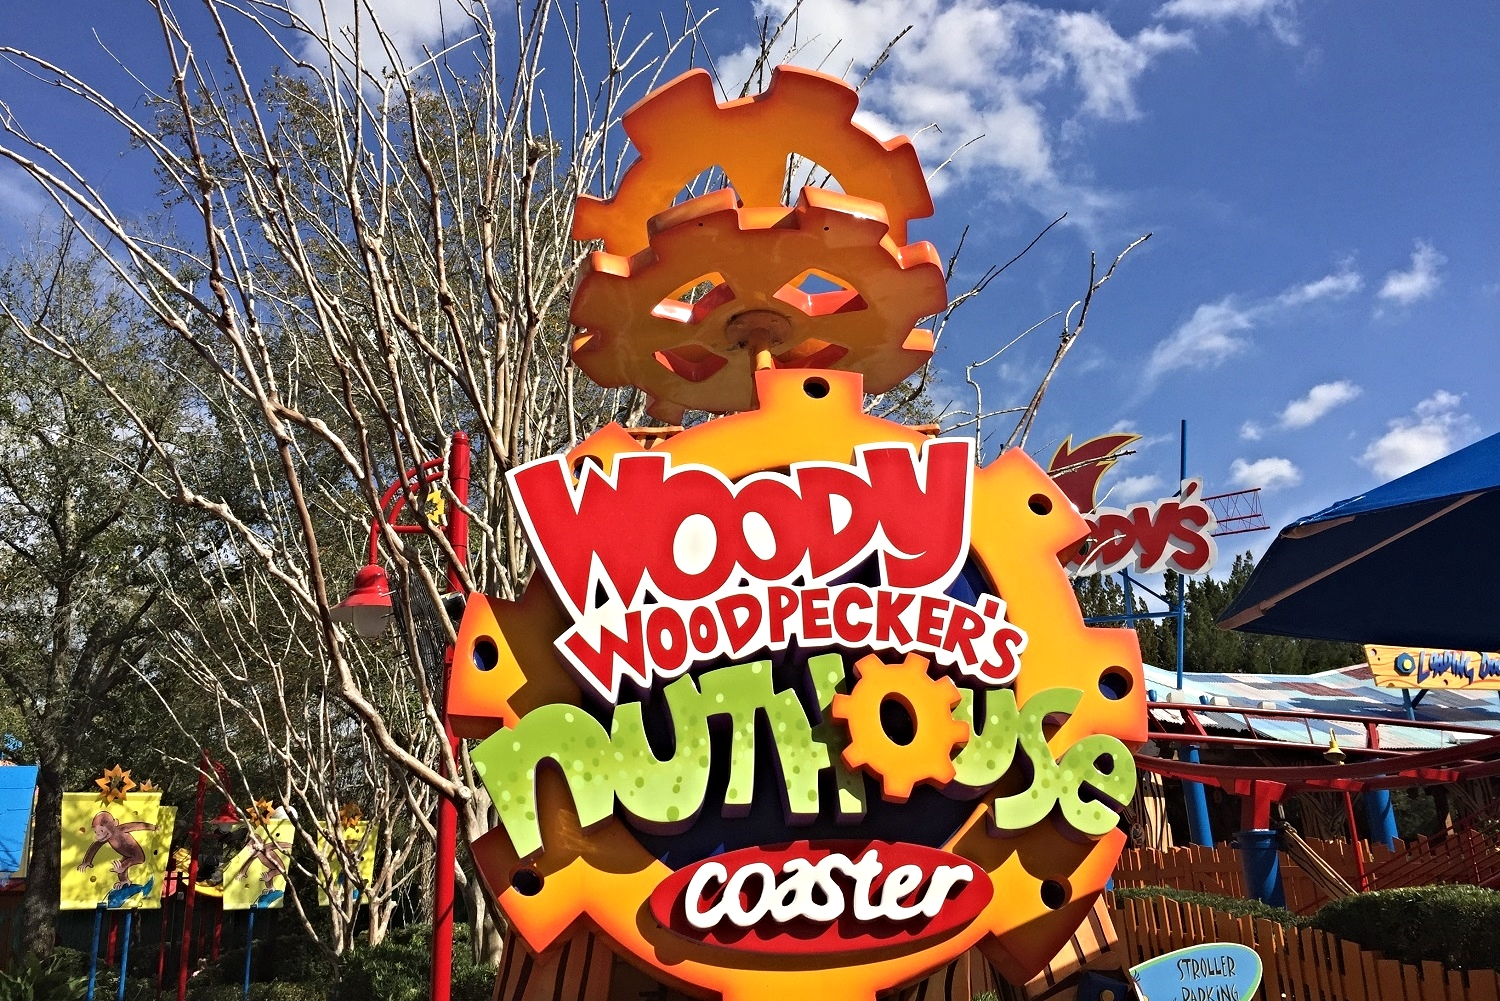 Learn about Woody Woodpecker's Nuthouse Coaster, a kid-friendly roller coaster in Universal Studios Florida.